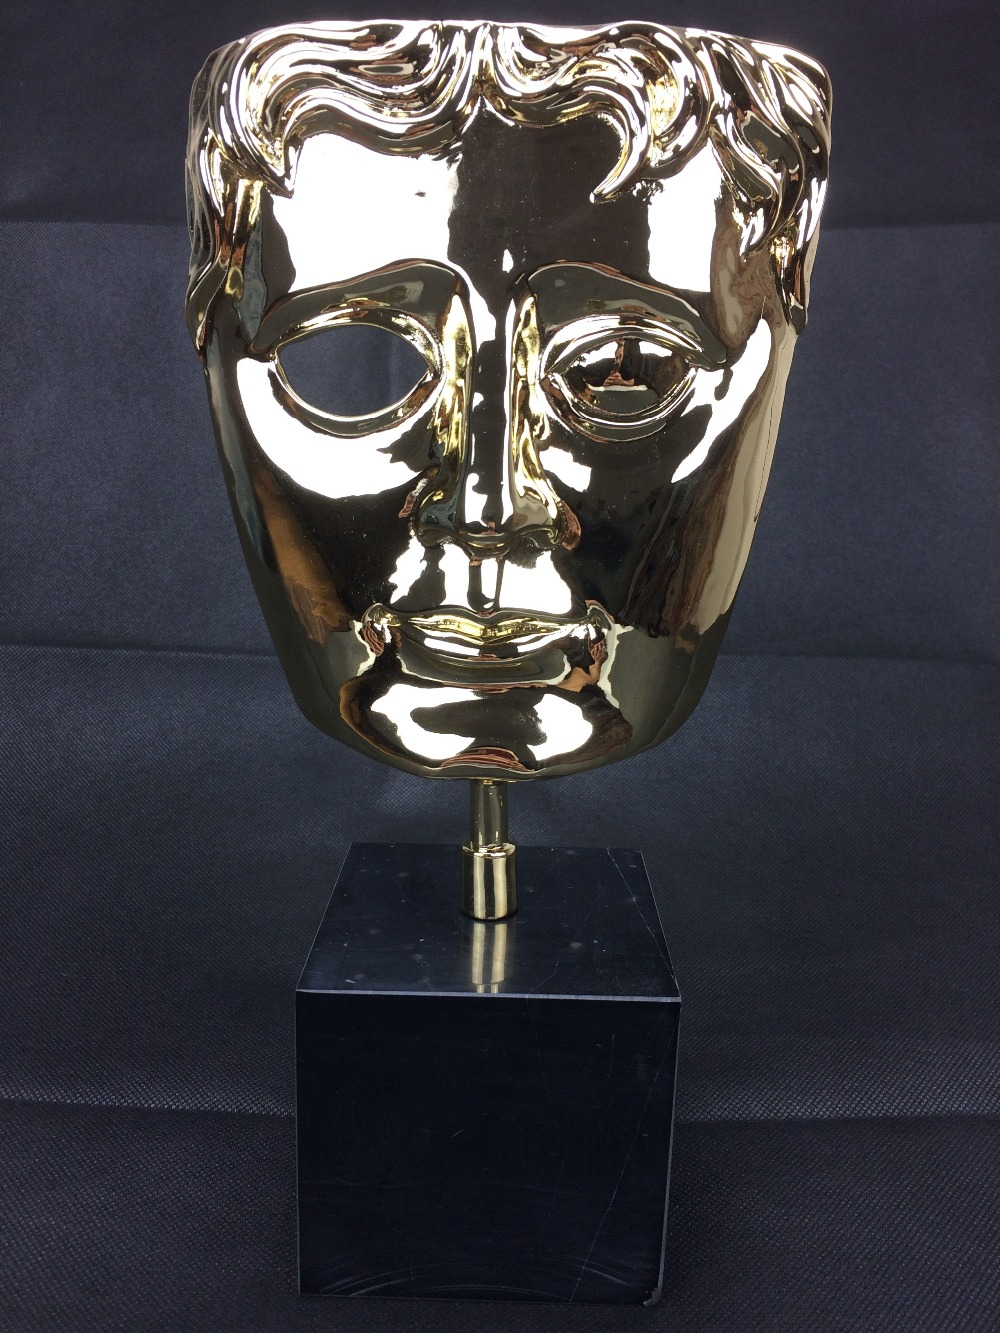 BAFTA Awards, Metal replica BAFTA Awards, Britsish Academy Film Awards